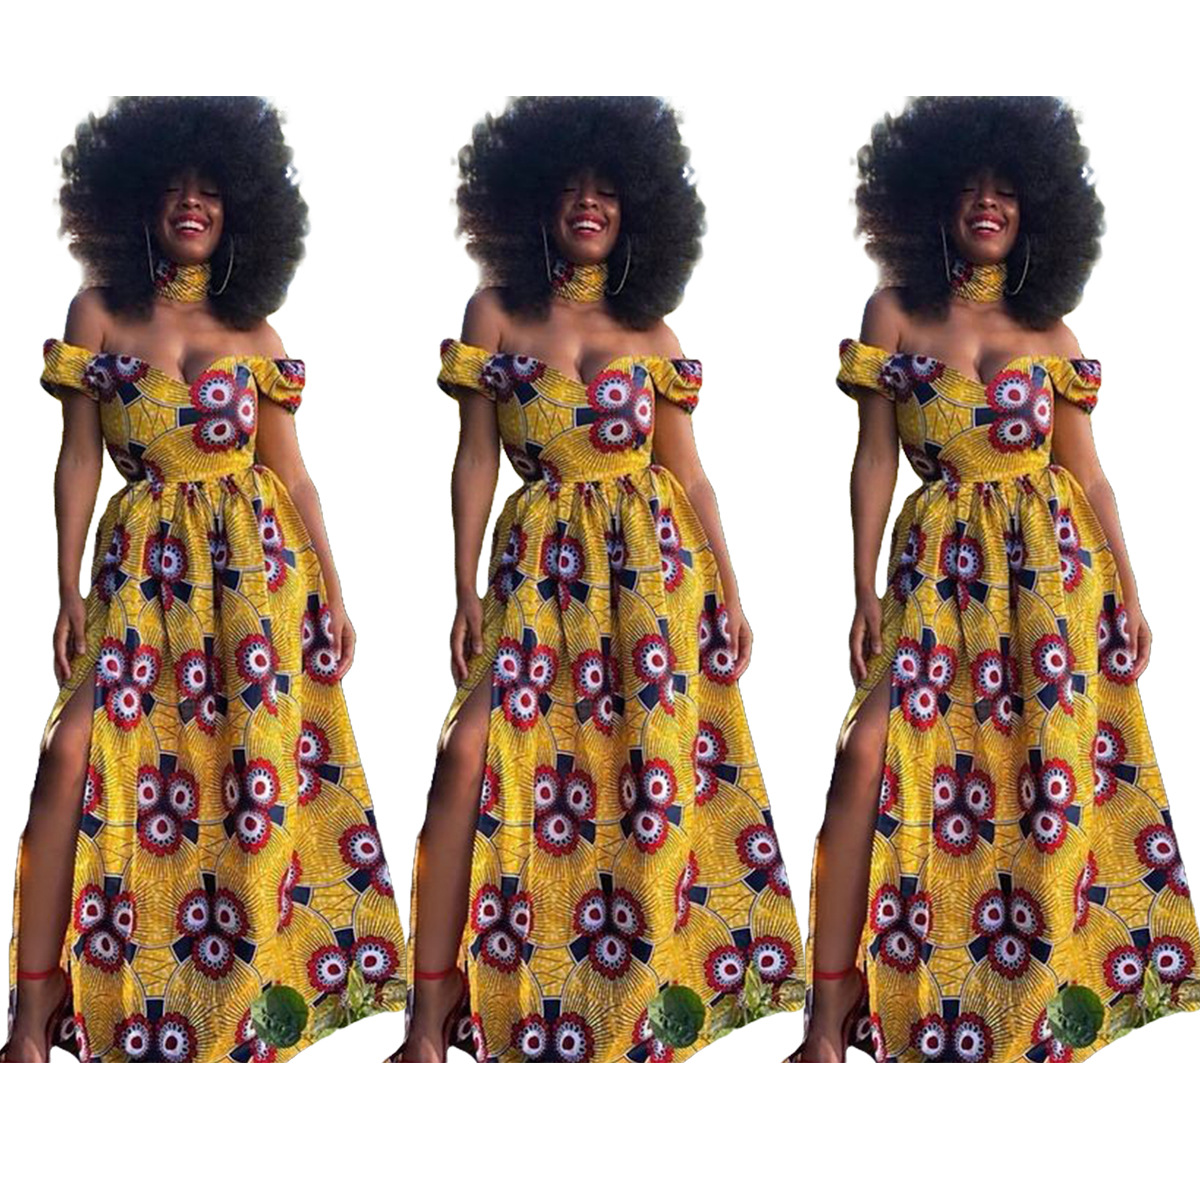 2019 New Summer Sexy Fashion Style African Women Printing Polyester Plus Size Long Dress S-XL